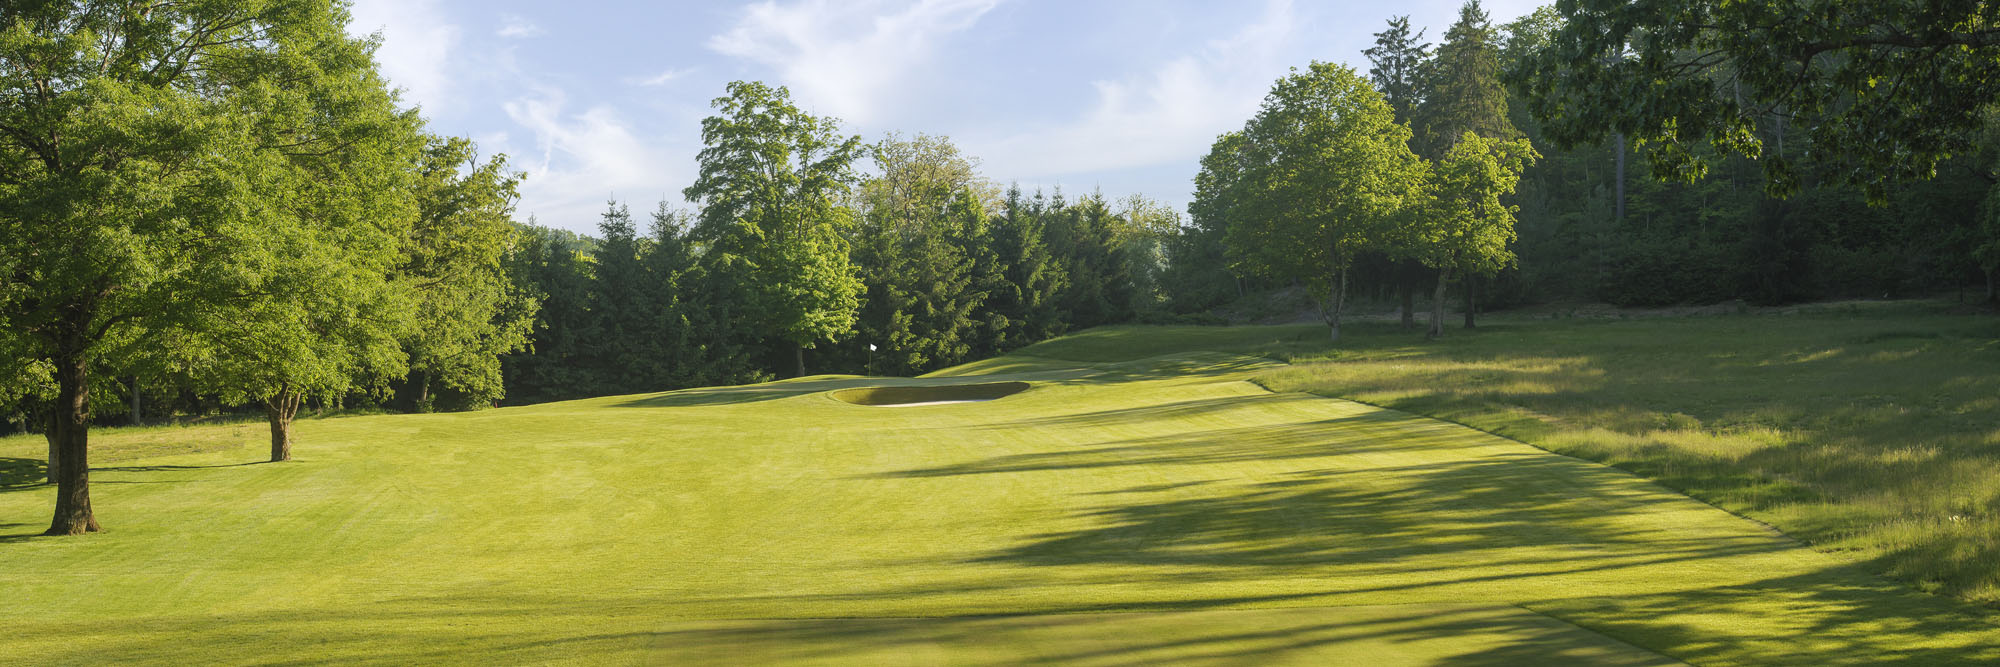 Golf Course Image - The Greenbrier Meadows Course No. 3